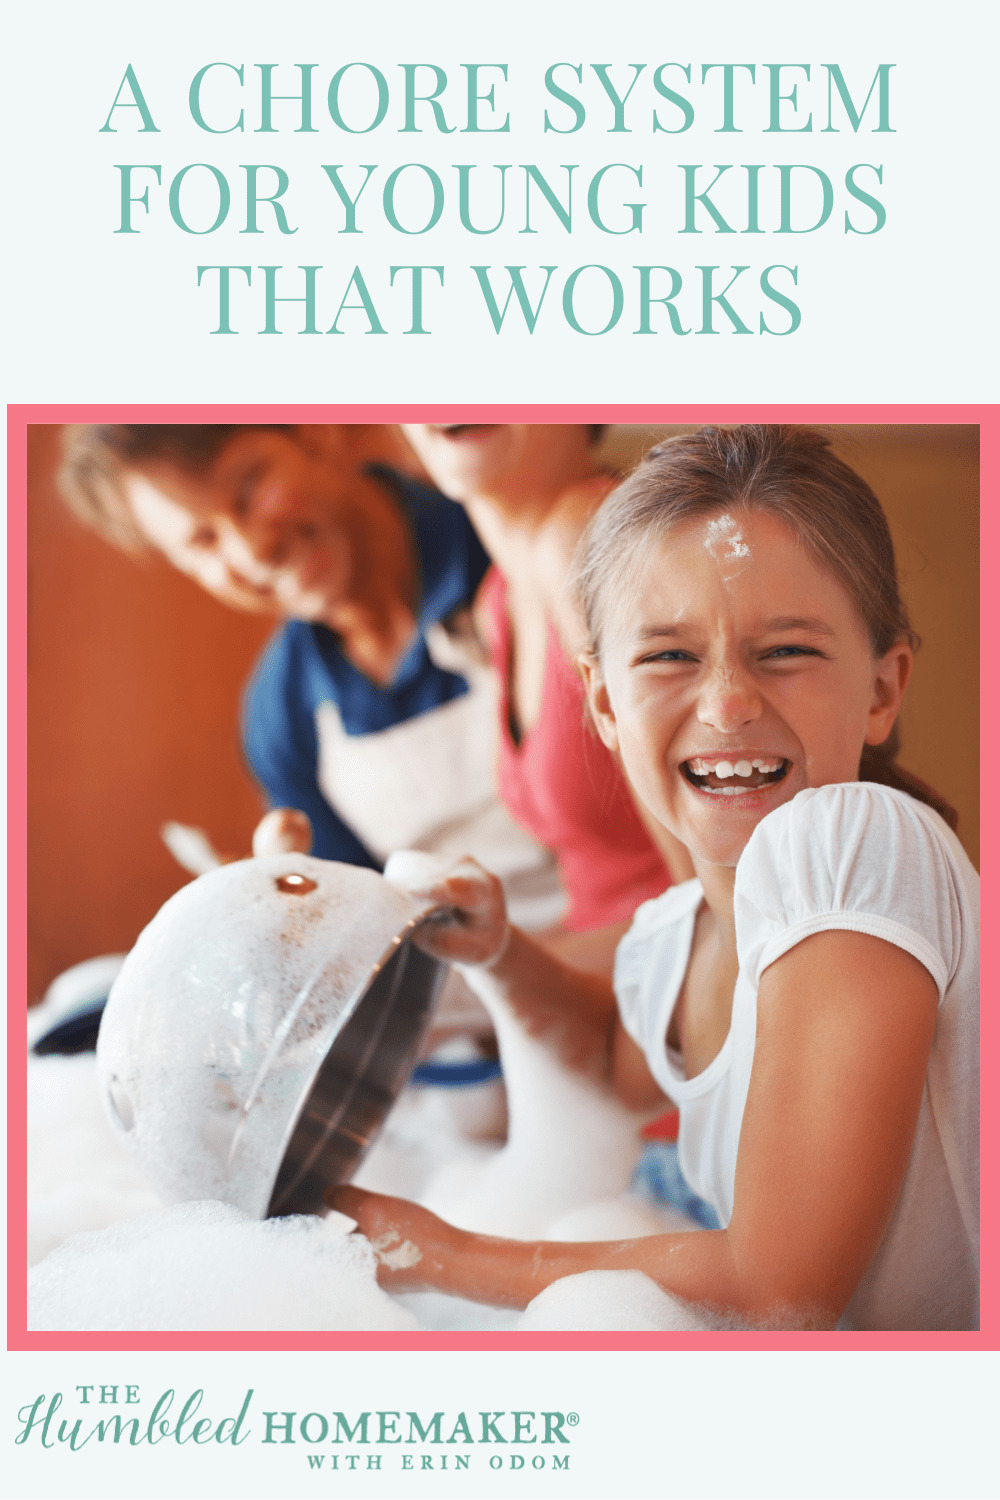 Are you confused as how to get your kids started with chores? Do you pay them or not? What is the best way to teach kids responsibility at home? We're excited to share a chore system for young kids that works for our family!